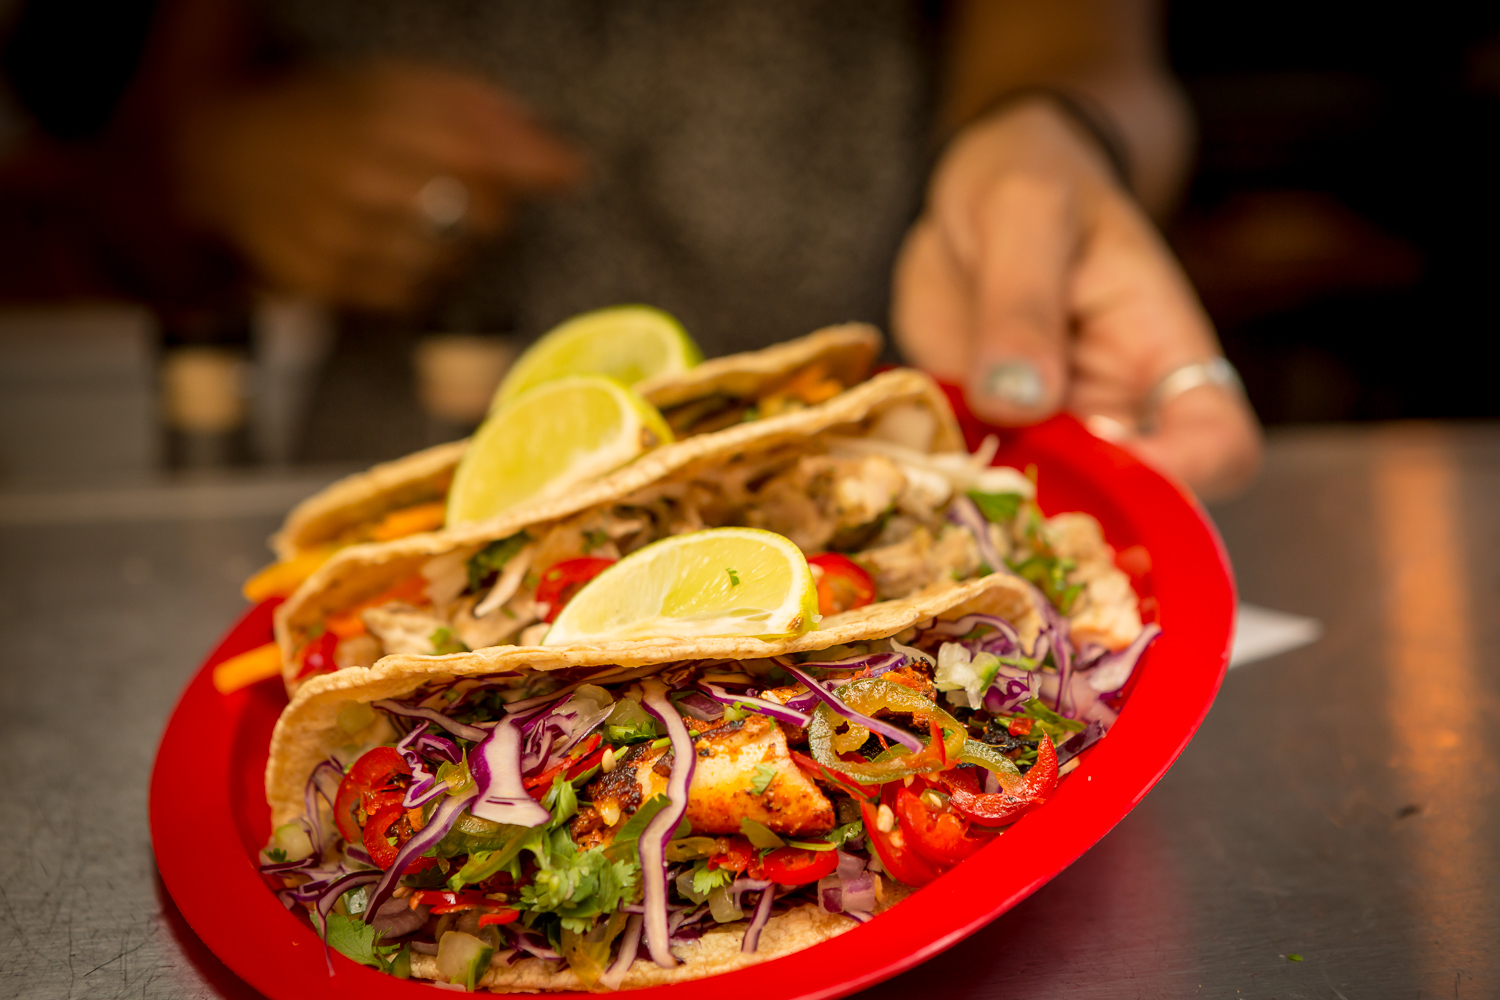 Elote's delicious tacos flew through the pass like, well, delicious tacos!